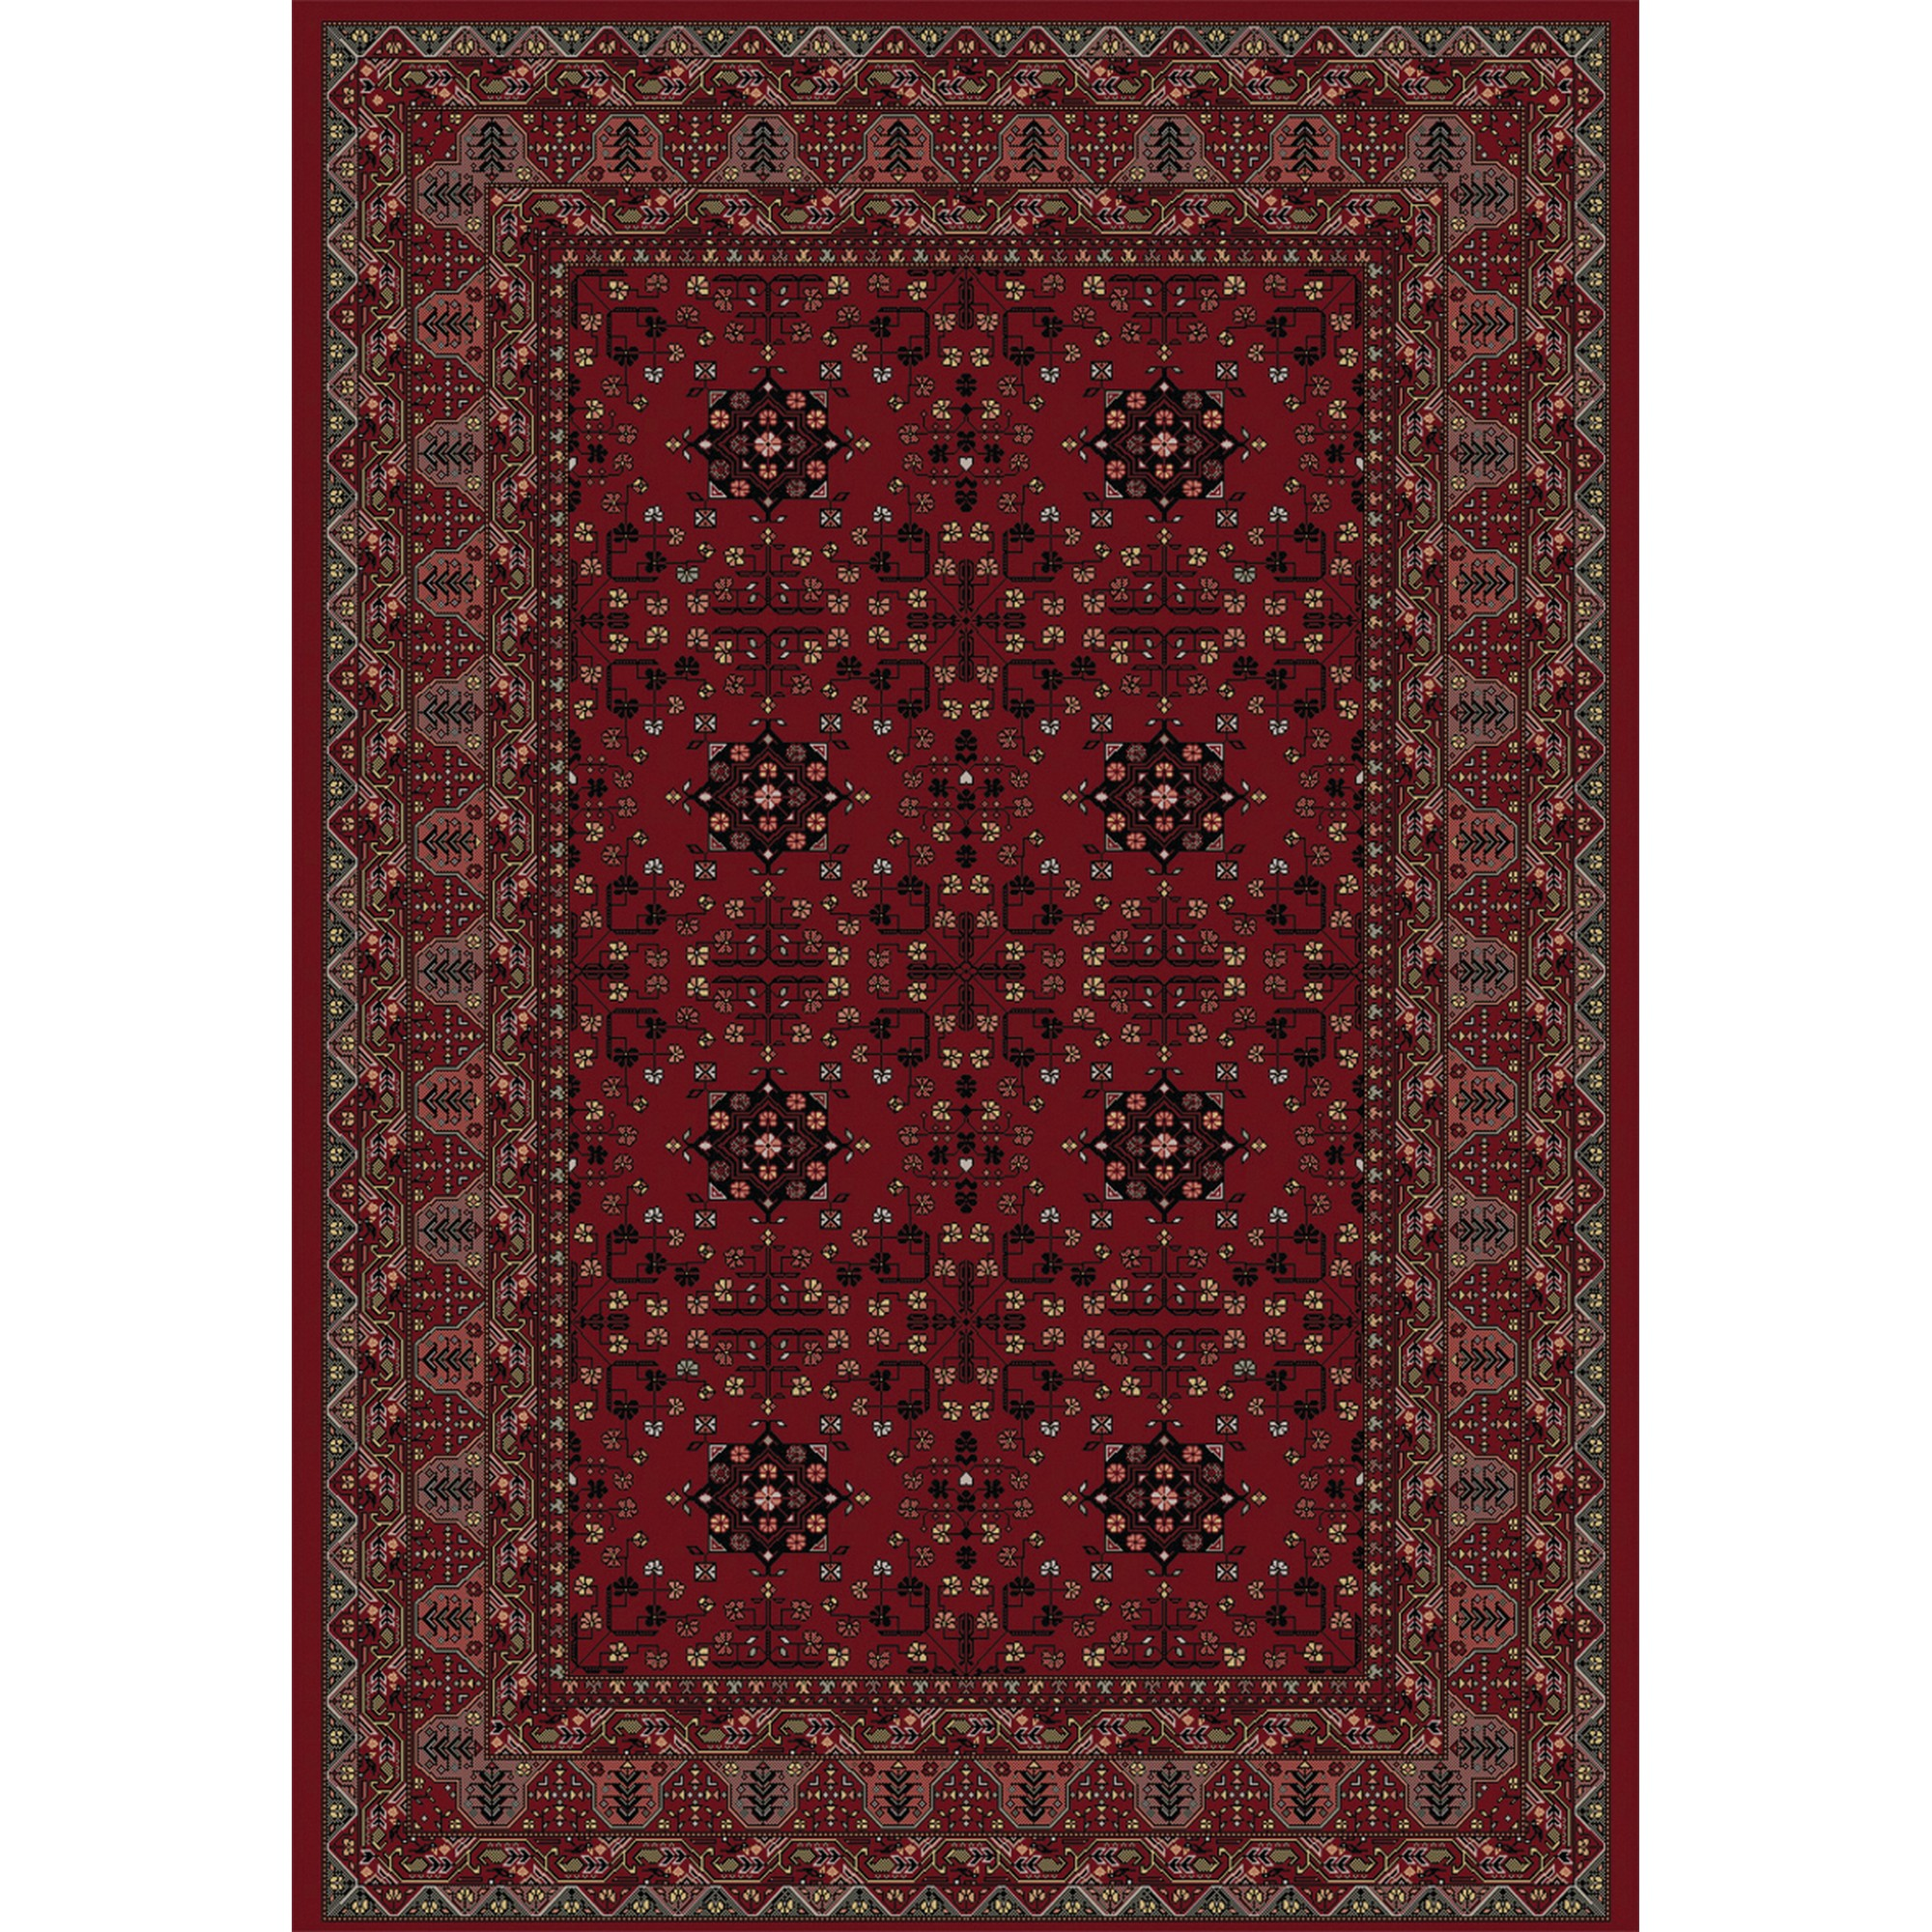 Viscount Rugs V61 65103 390 Red